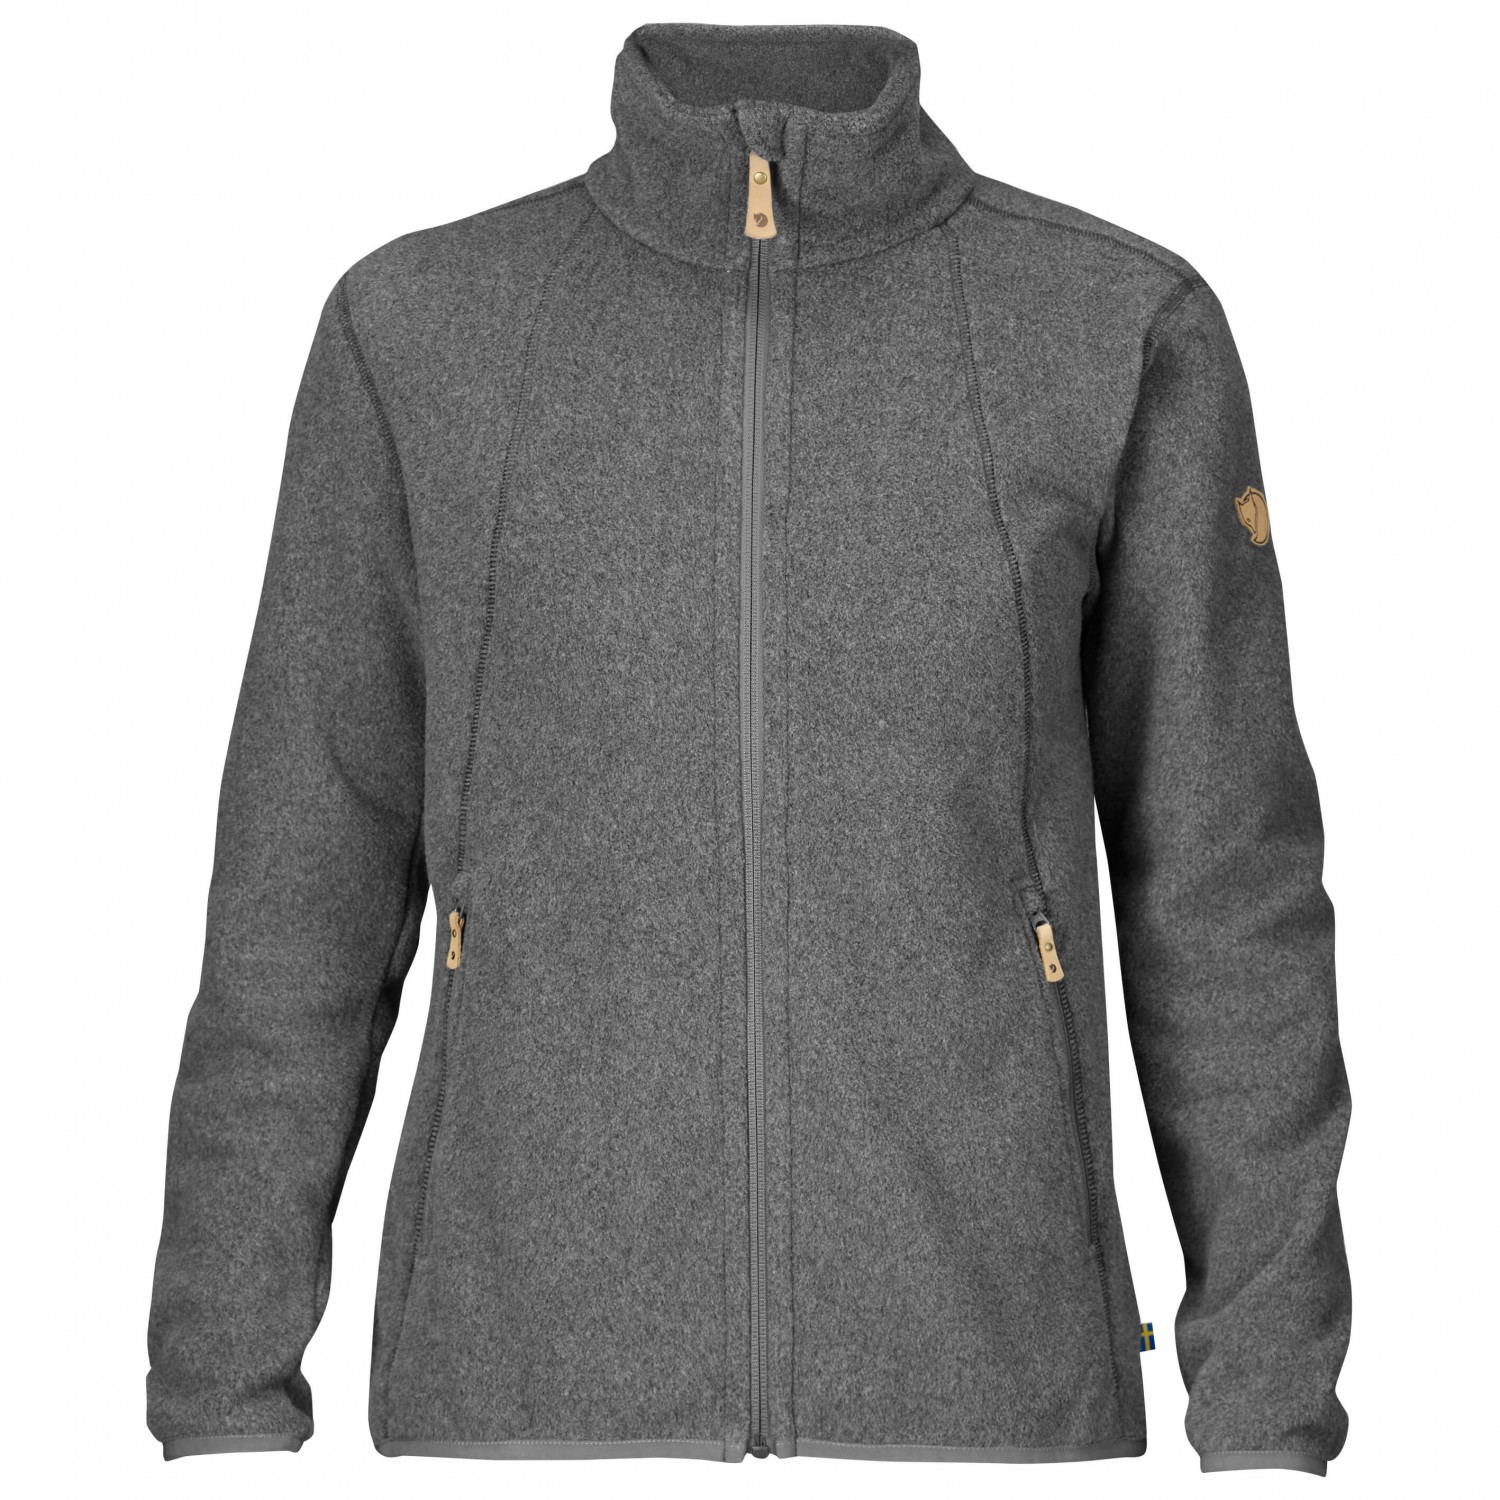 fjall räven damen fleece jacke